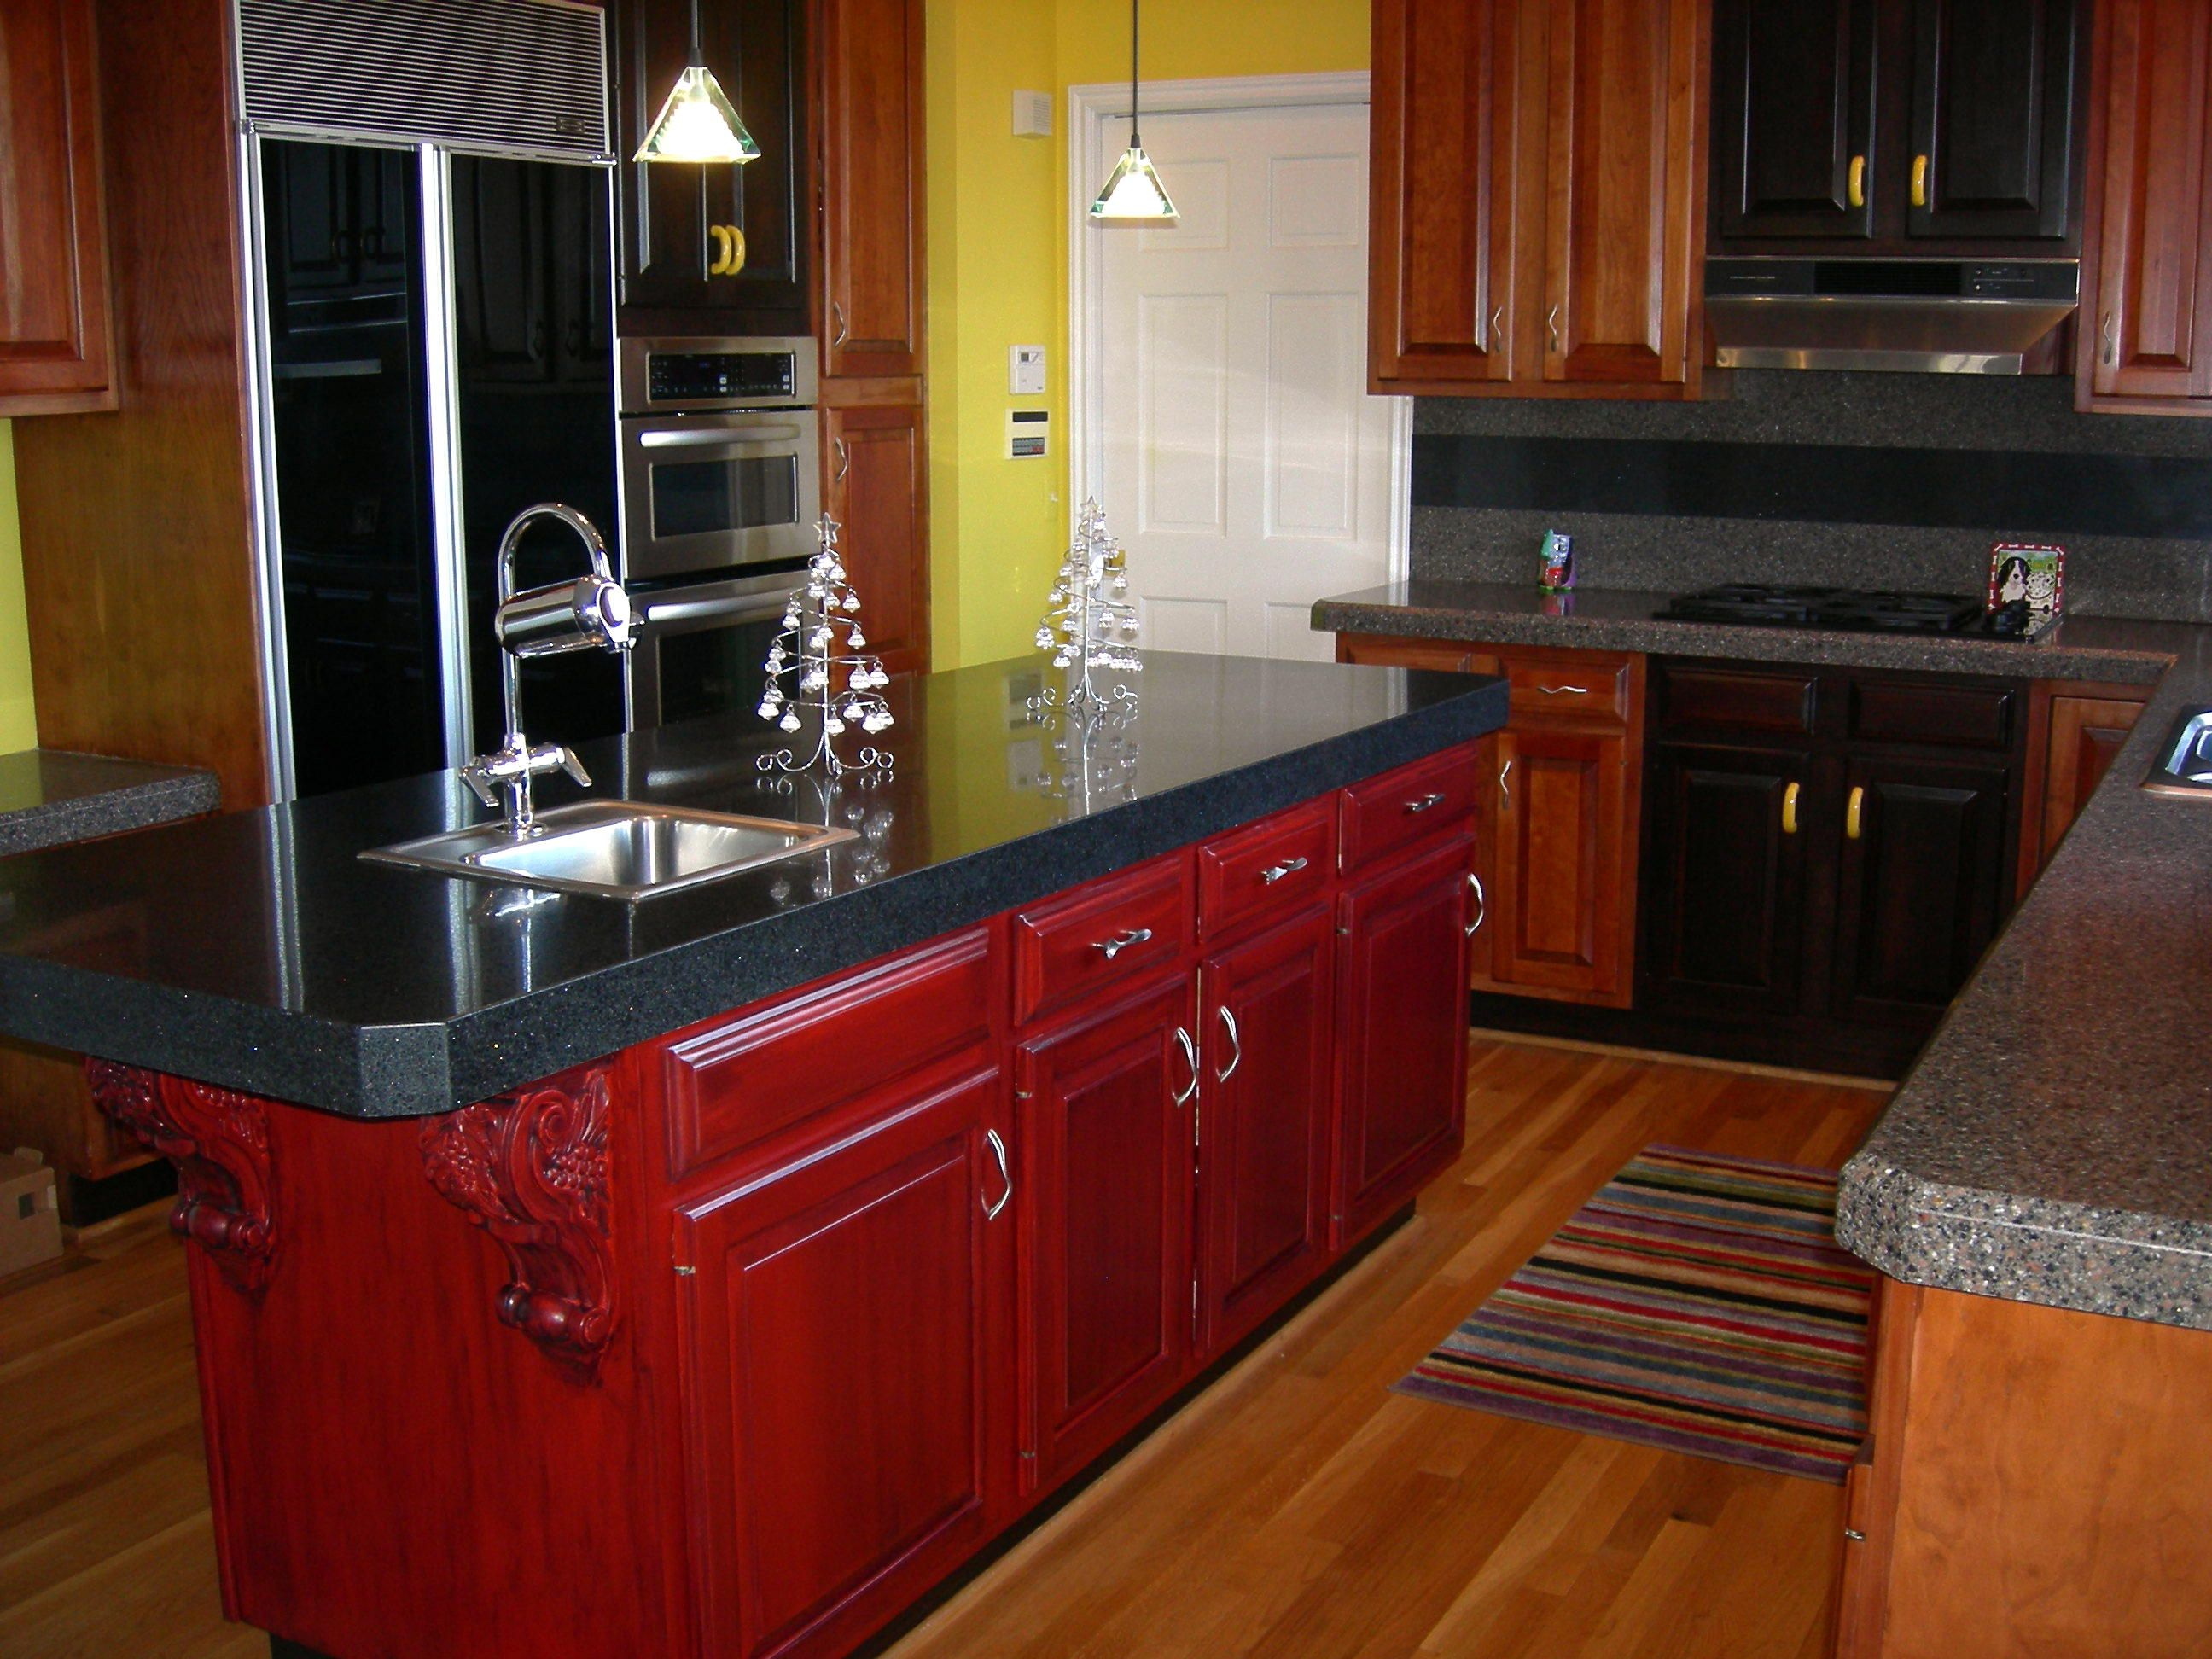 Refinishing Kitchen Cabinets Refinishing Kitchen Cabinets Stained Kitchen Cabinets Kitchen Cabinets Refinishing Cabinets